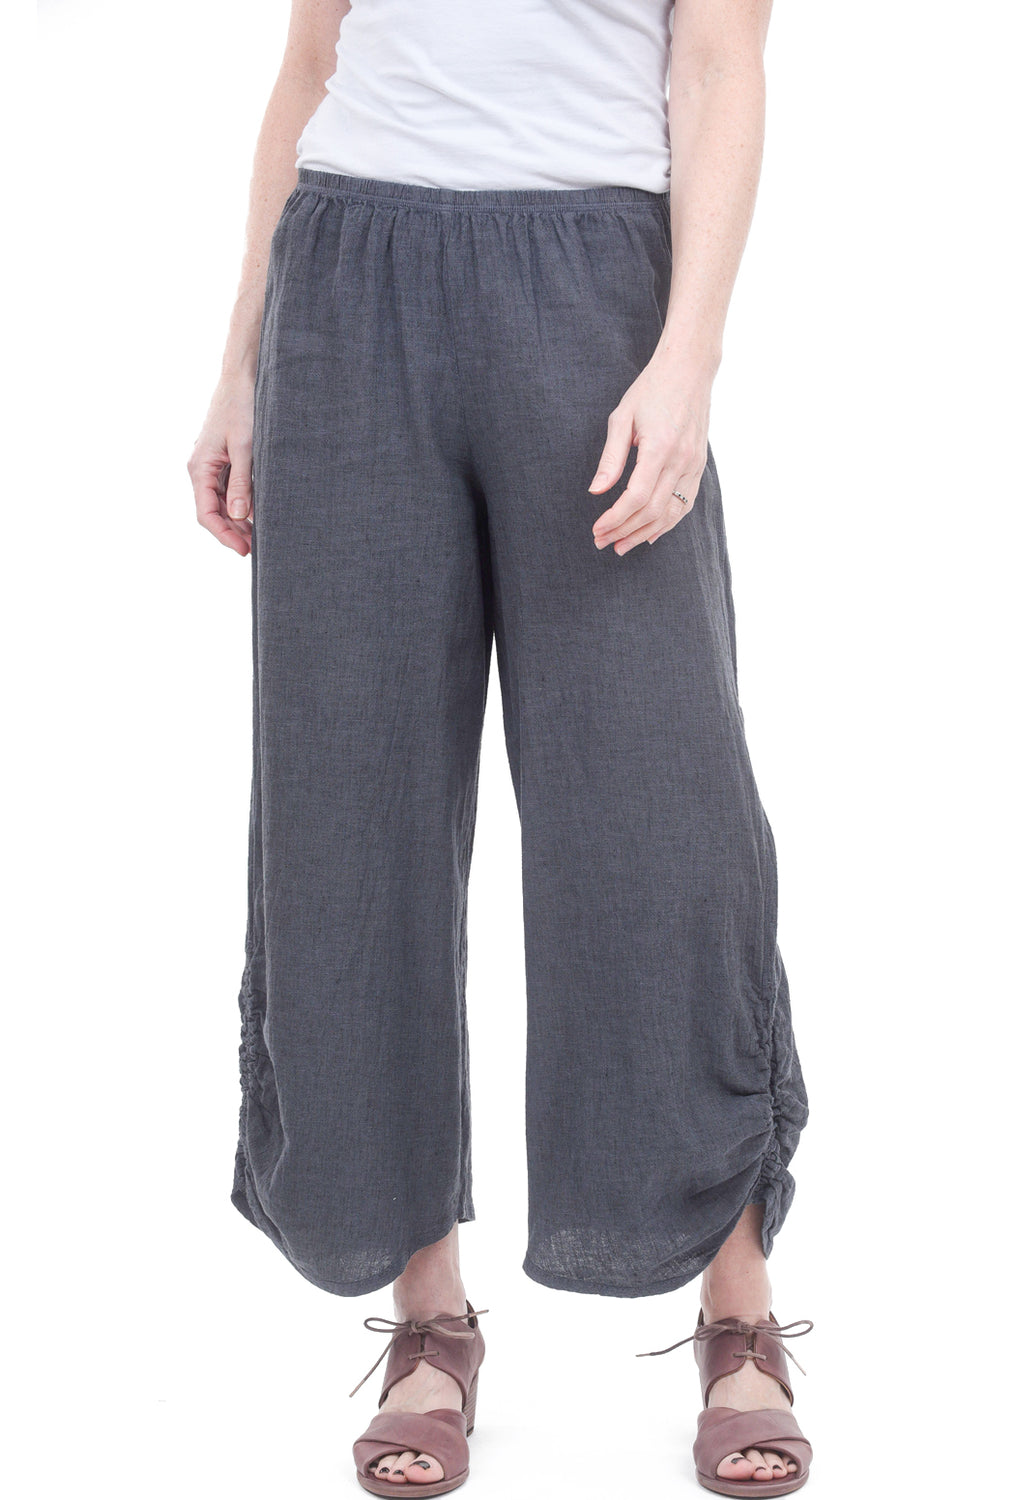 Cut Loose Crosshatch Ruched Pants, Iron Gray